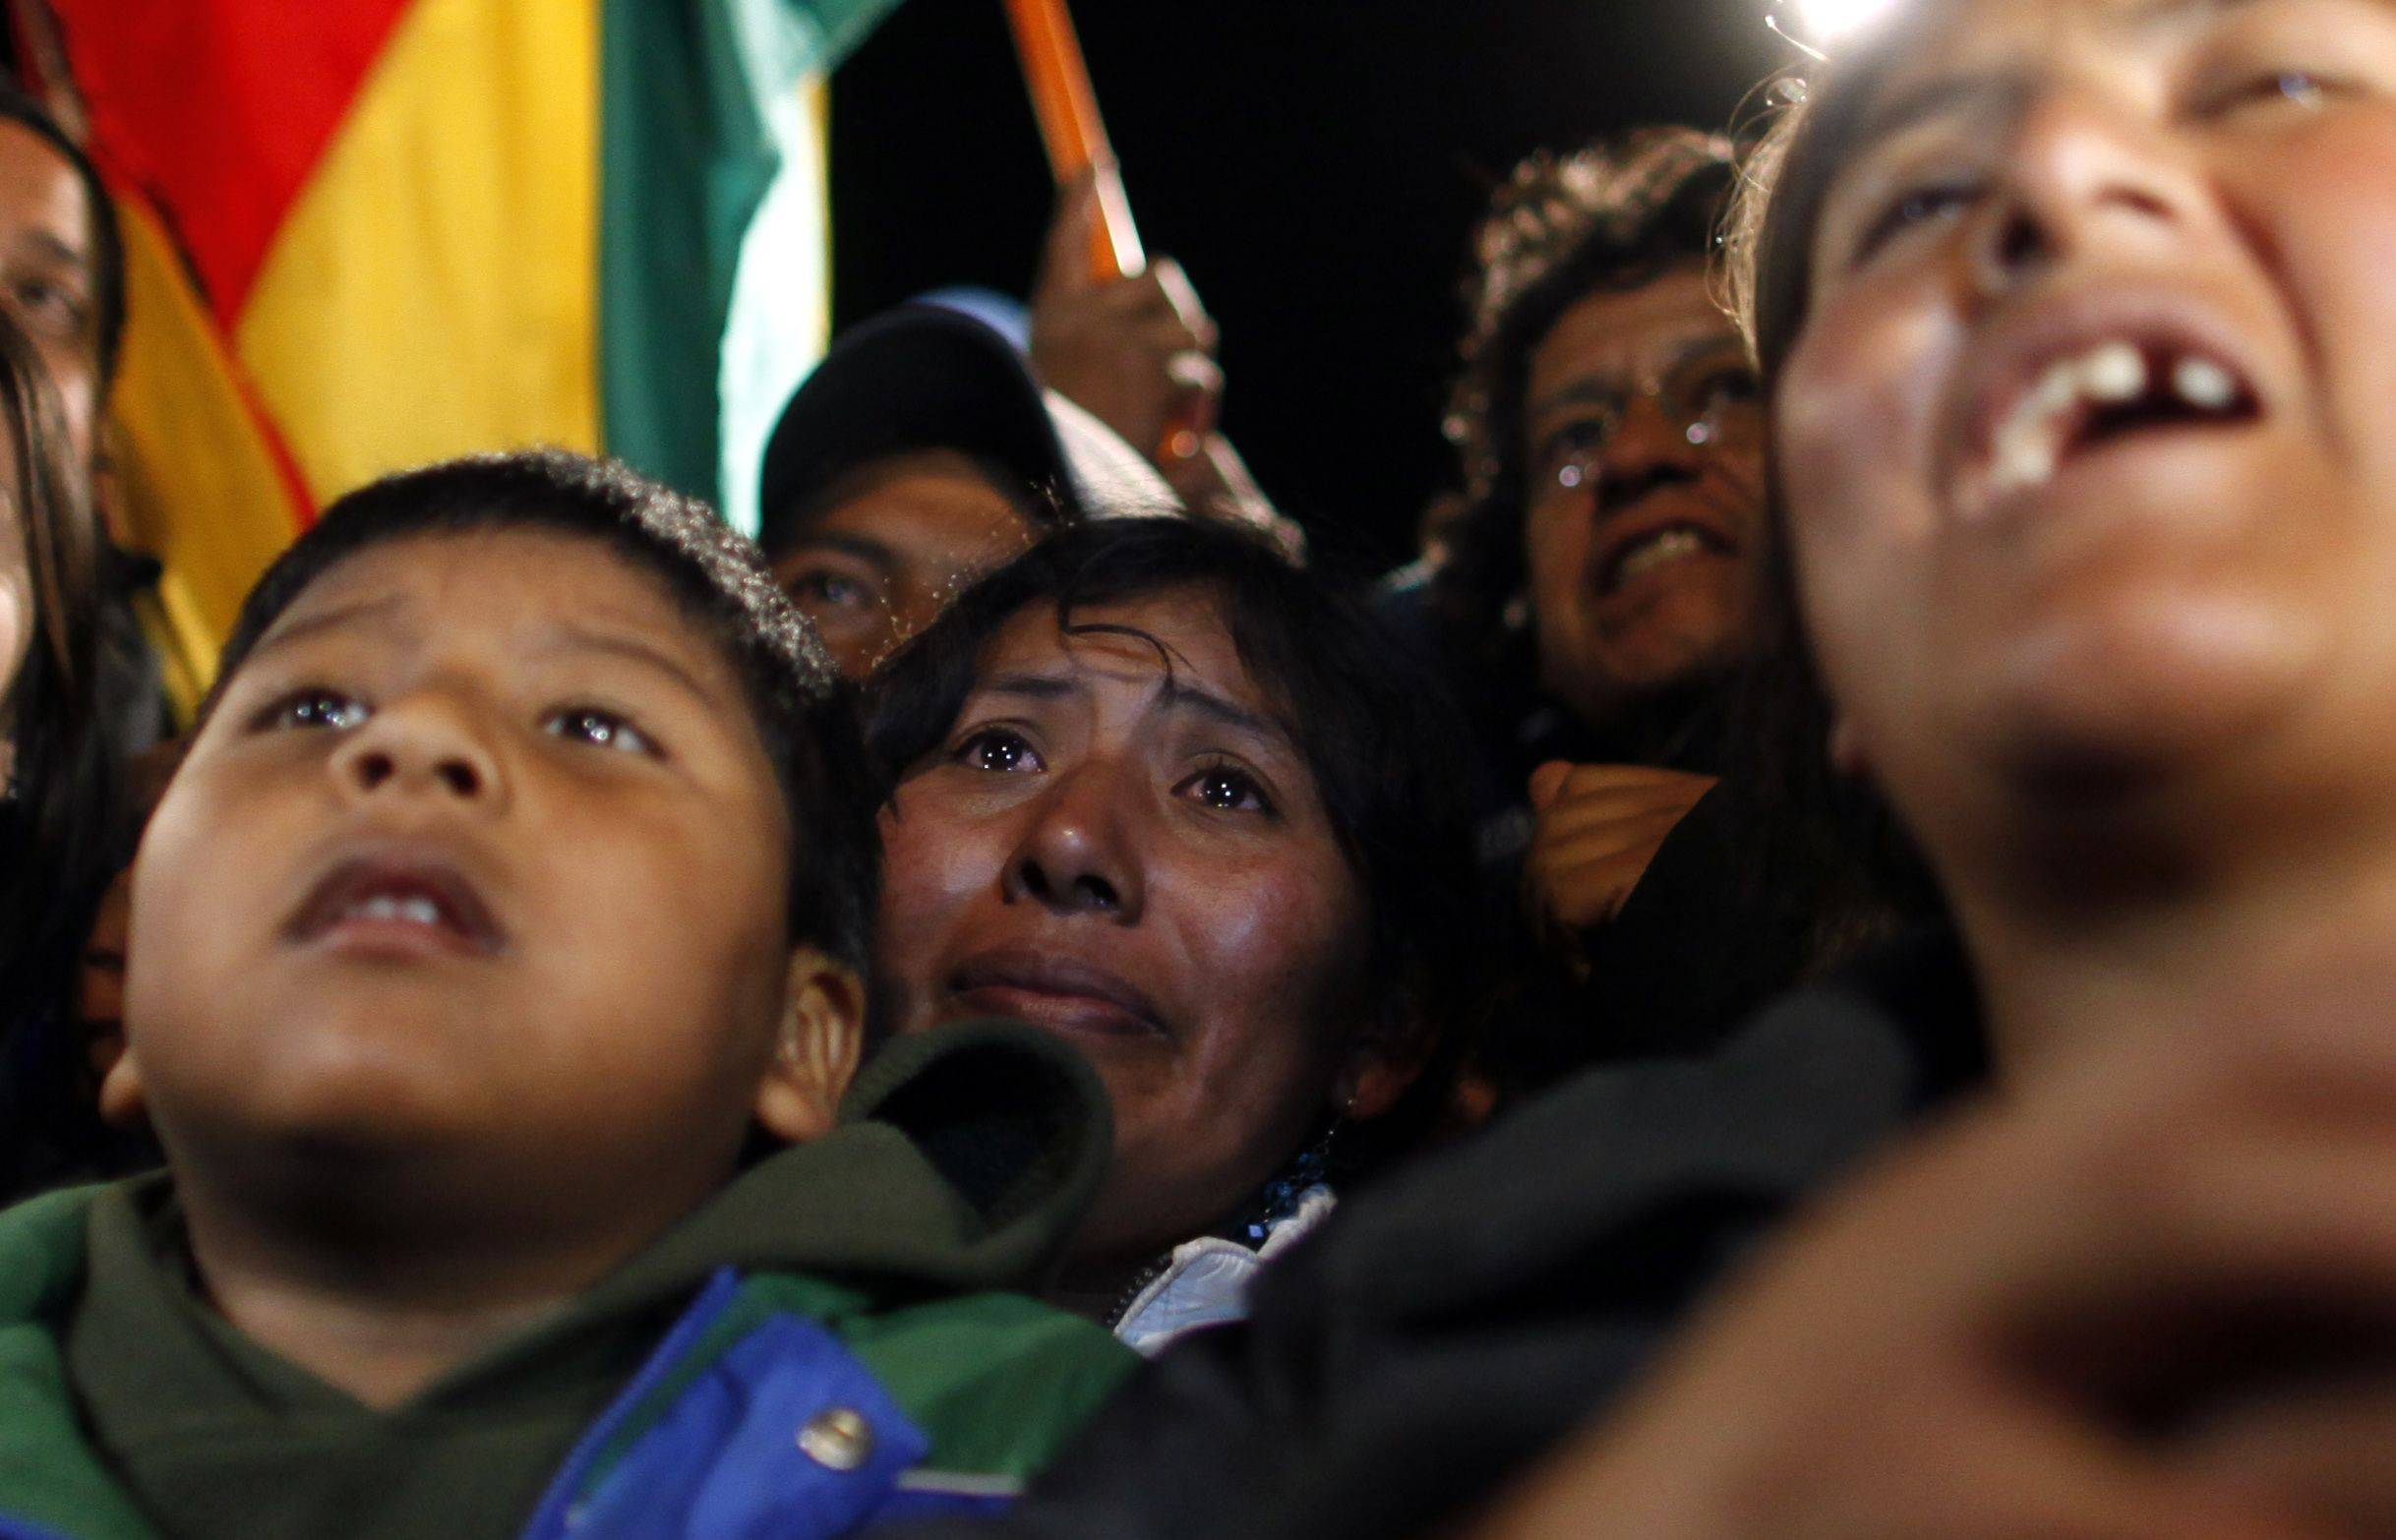 Relatives of trapped Bolivian miner Carlos Mamani Solis react while watching his rescue on a TV screen at the camp outside the San Jose mine near Copiapo, Chile, early Wednesday, Oct. 13, 2010. Mamani was trapped with 32 other miners for over two months in the collapsed mine.